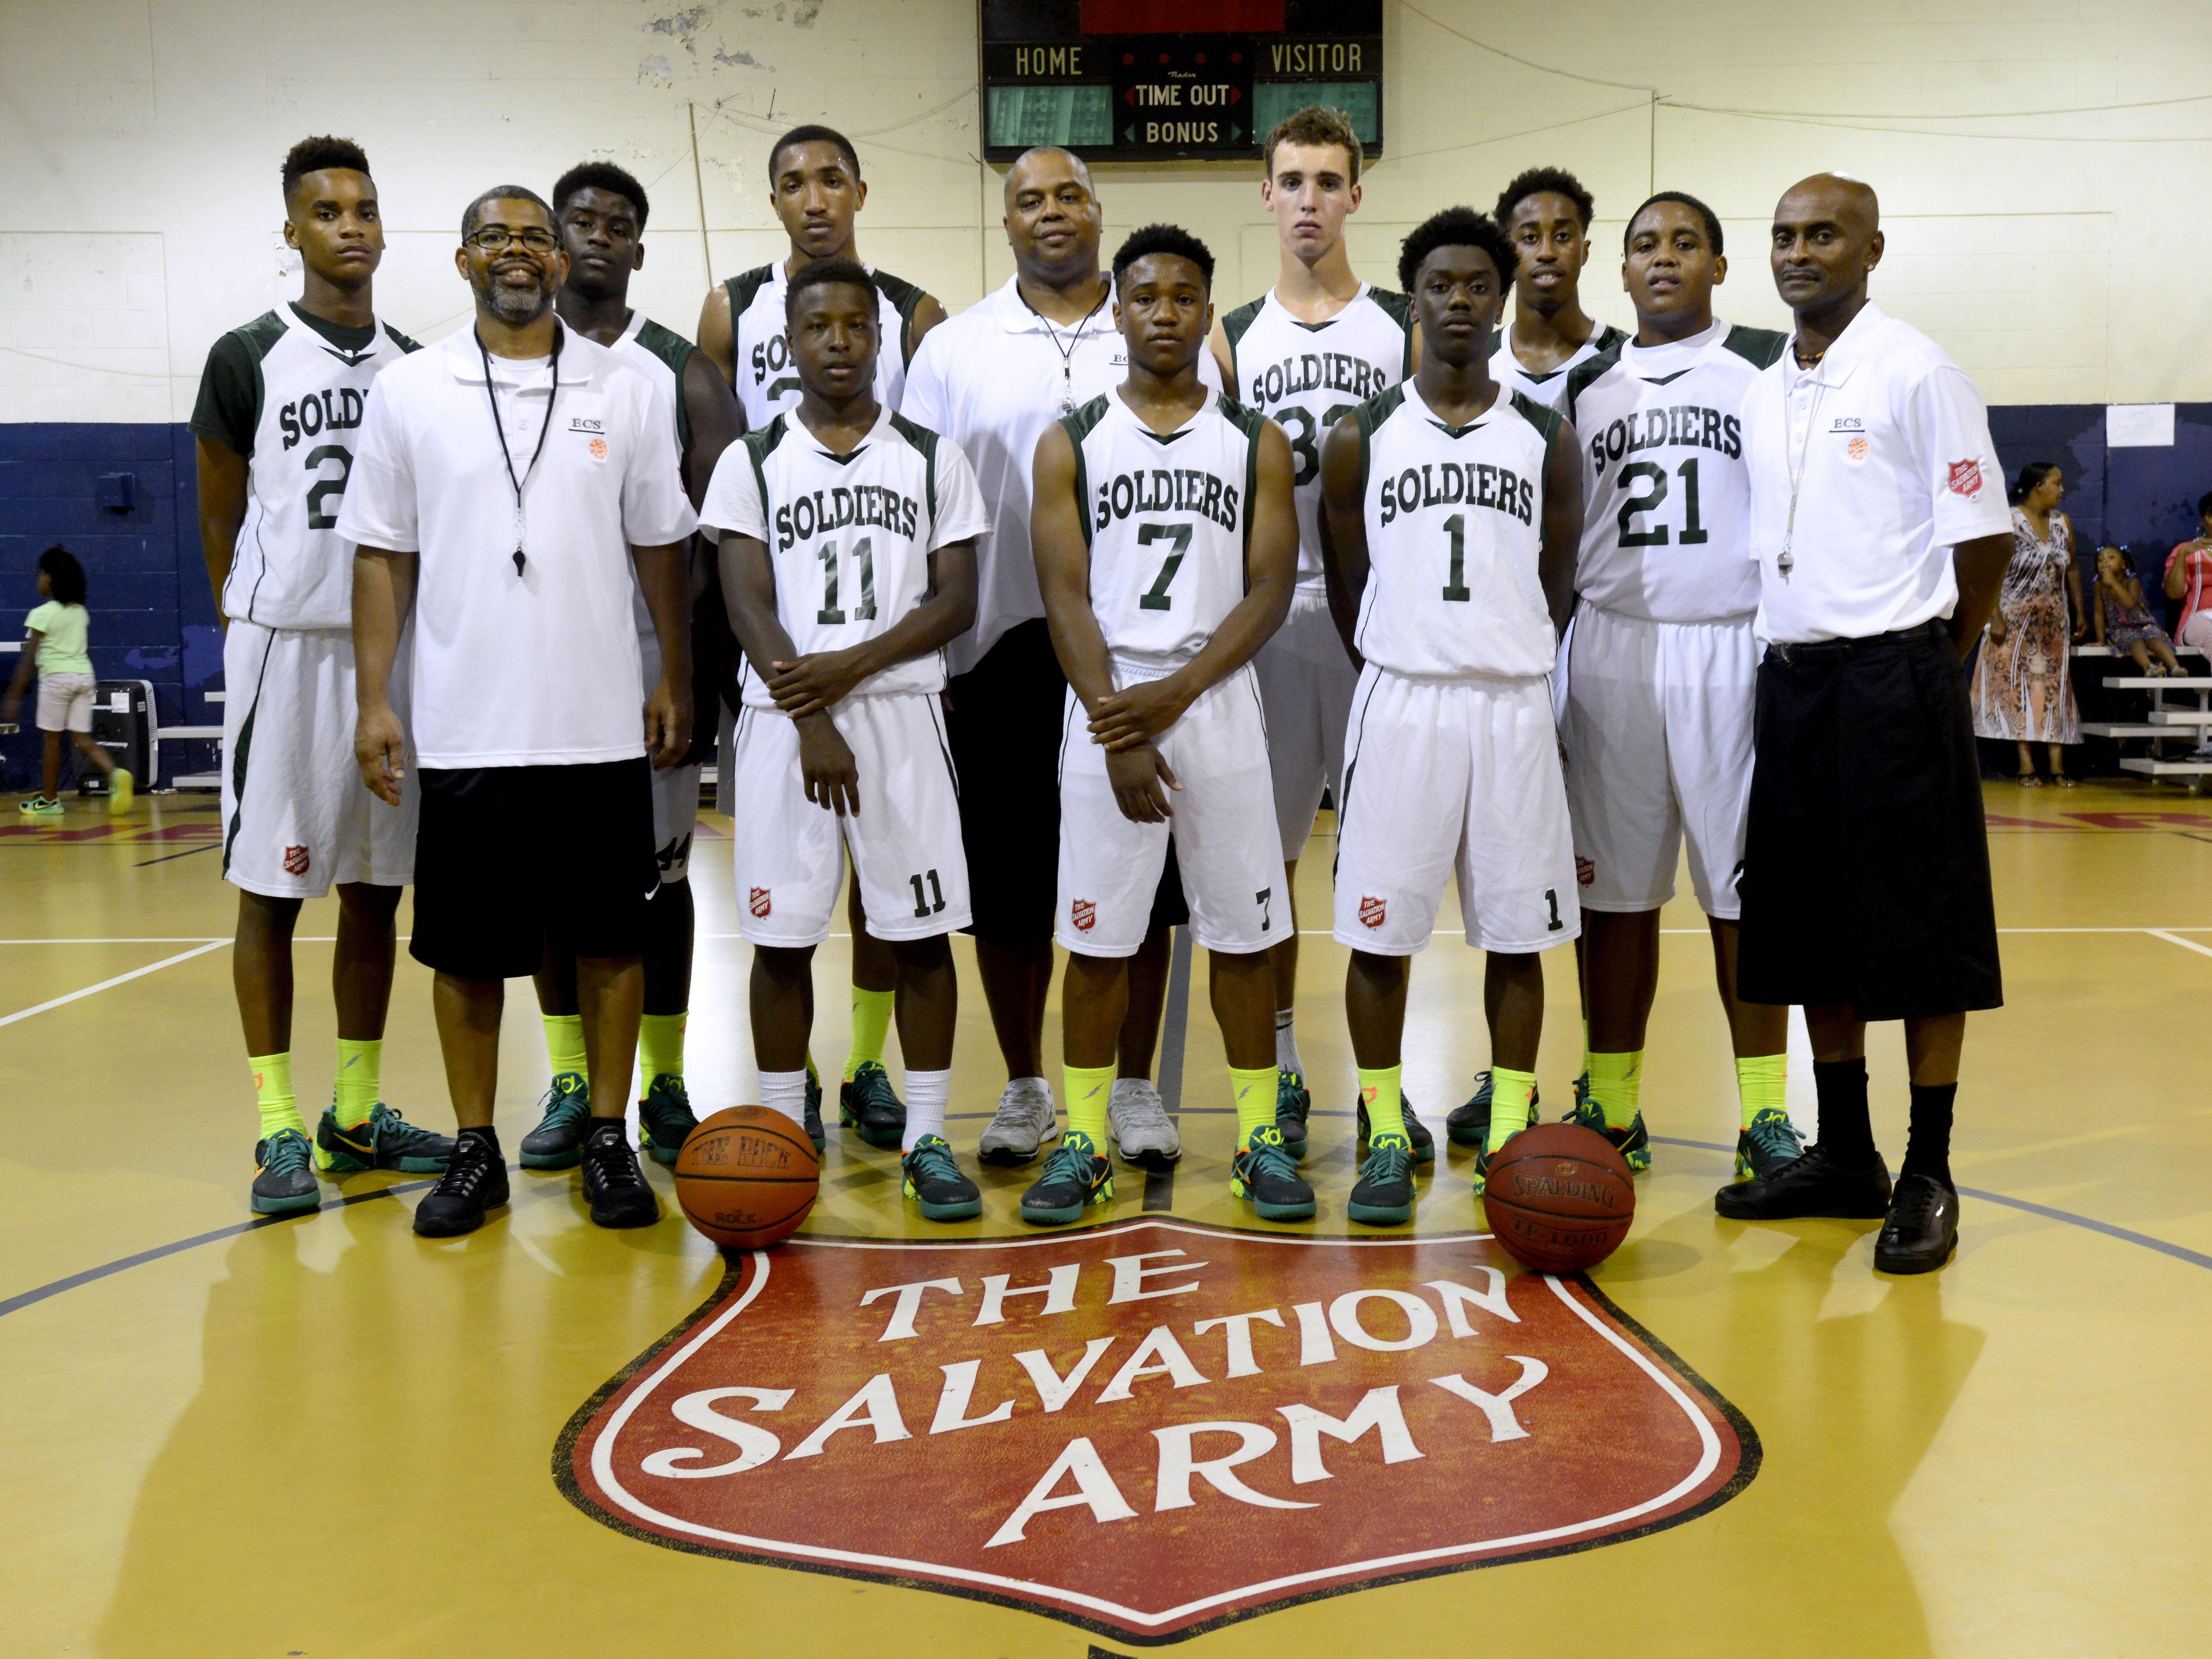 The Emerald Coast Soldiers are representing Pensacola in the AAU Nationals in Memphis this weekend. Players and coaches in the front row are, from left, coach Kenton Cass, Eric Milton, Roy Jones III and Eric Goldsmith and coach Micheal Randolph Snr. The back row, from left, are Micheal Randolph Jr., Taylor Williams, Davonchae Bryant, head coach Dwayne Kelley, Hayden Atkinson, Shawndarius Cowart and Dwayne Kelley Jr.